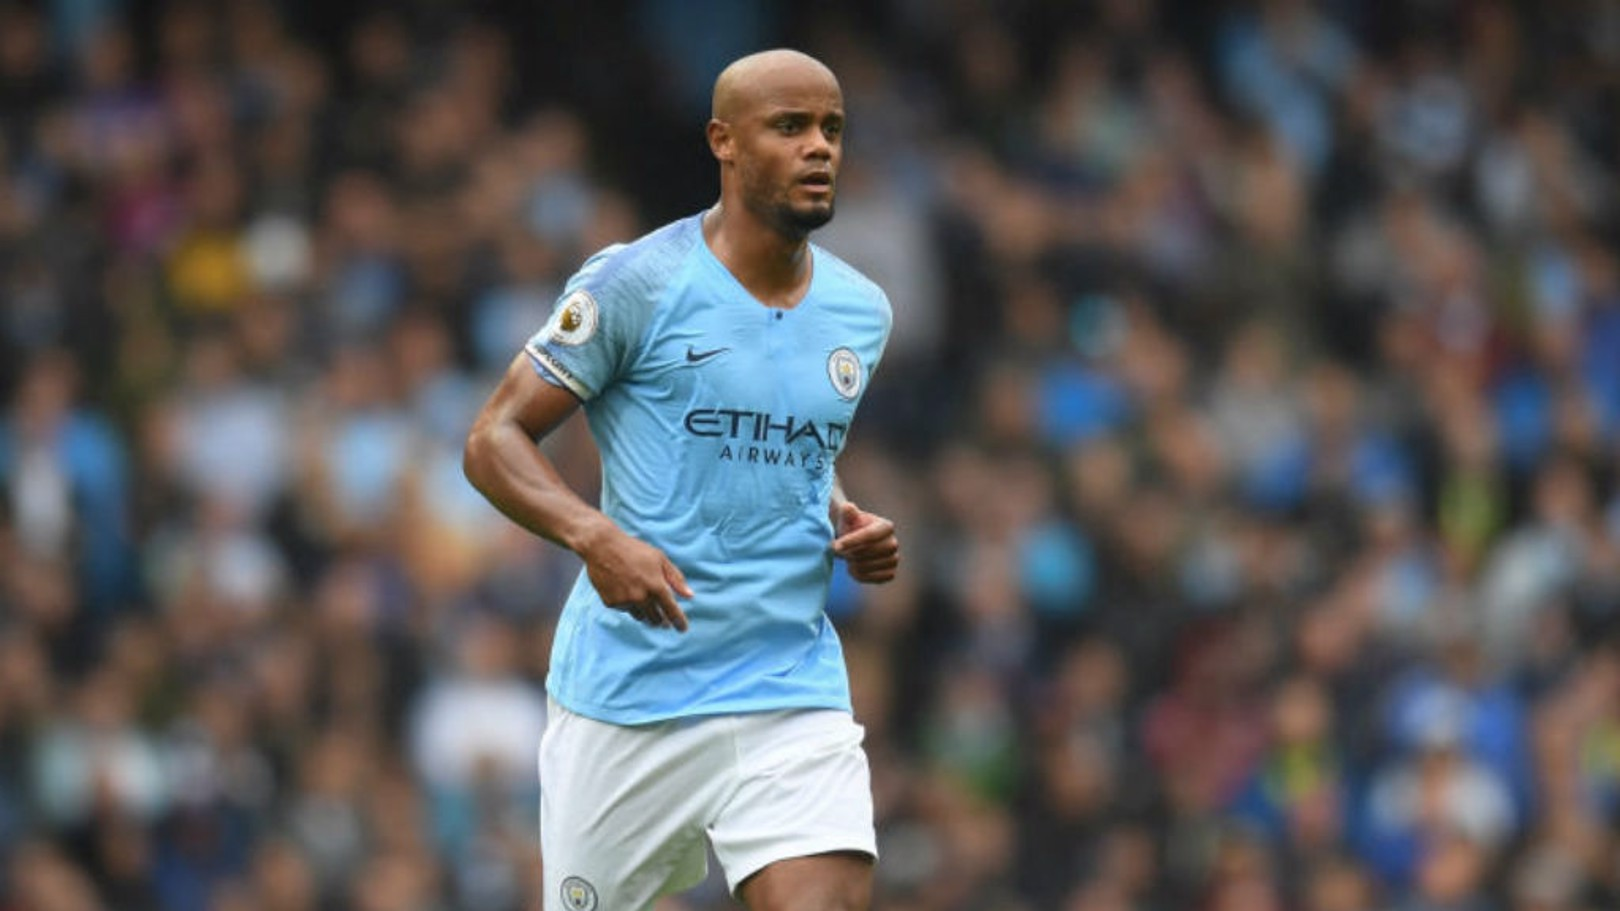 PERFECT 10: Vincent Kompany has chalked up a magnificent decade with Manchester City